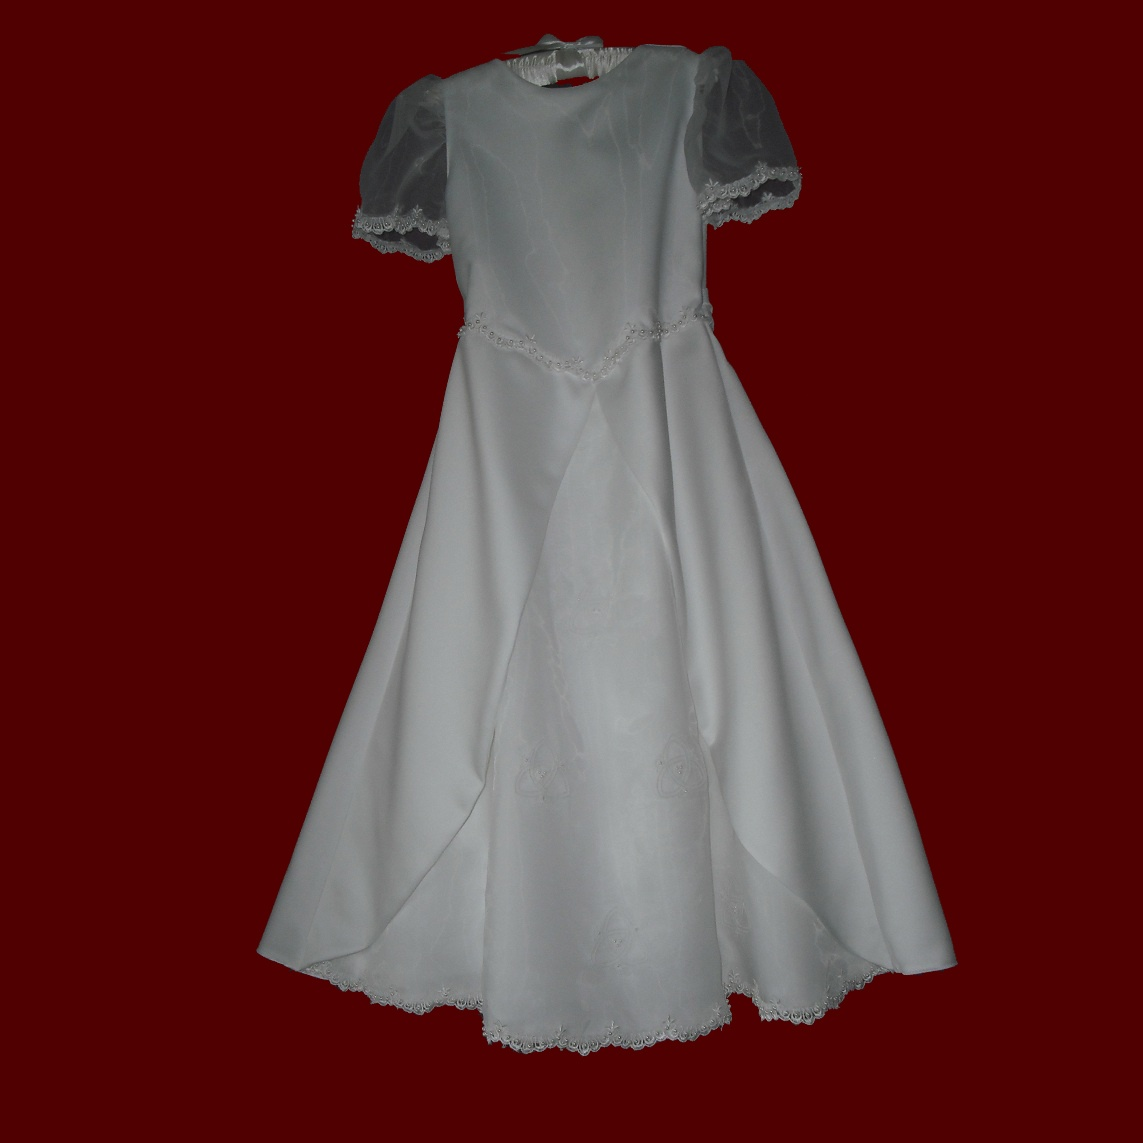 Irish Communion Dress With Embroidered Trinity Knots